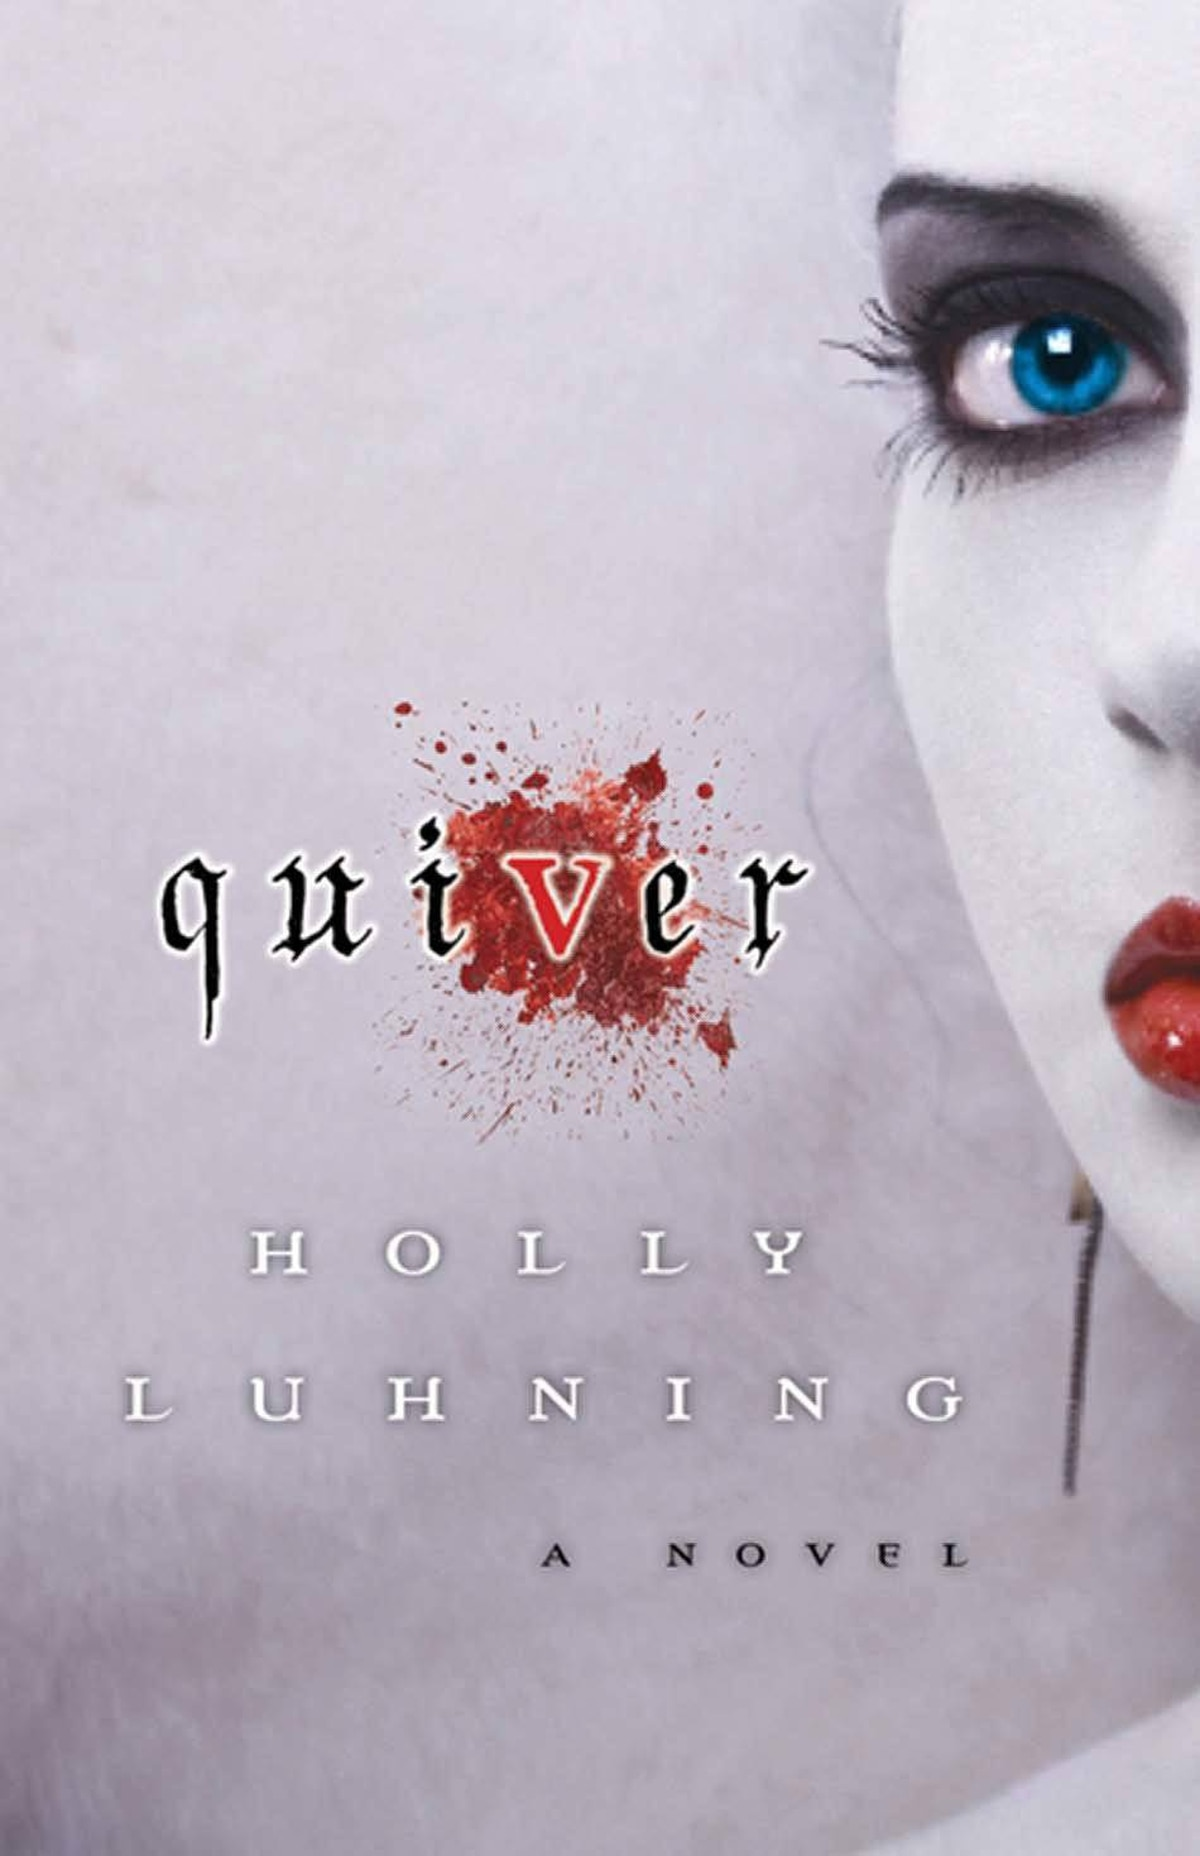 """QUIVER By Holly Luhning (HarperCollins) Like a perfectly executed murder with a feminine touch, Quiver has everything: style, substance, terror, a treacherous murderess – and lip gloss. Danica, a Canadian forensic psychologist, finds her enthrallment with violence fed by Hungarian Countess Elizabeth Báthory, who tortured and killed 650 women; her celebrity patient, murderer Martin Foster; and """"frenemy"""" Maria Janos. – Ibi Kaslik"""